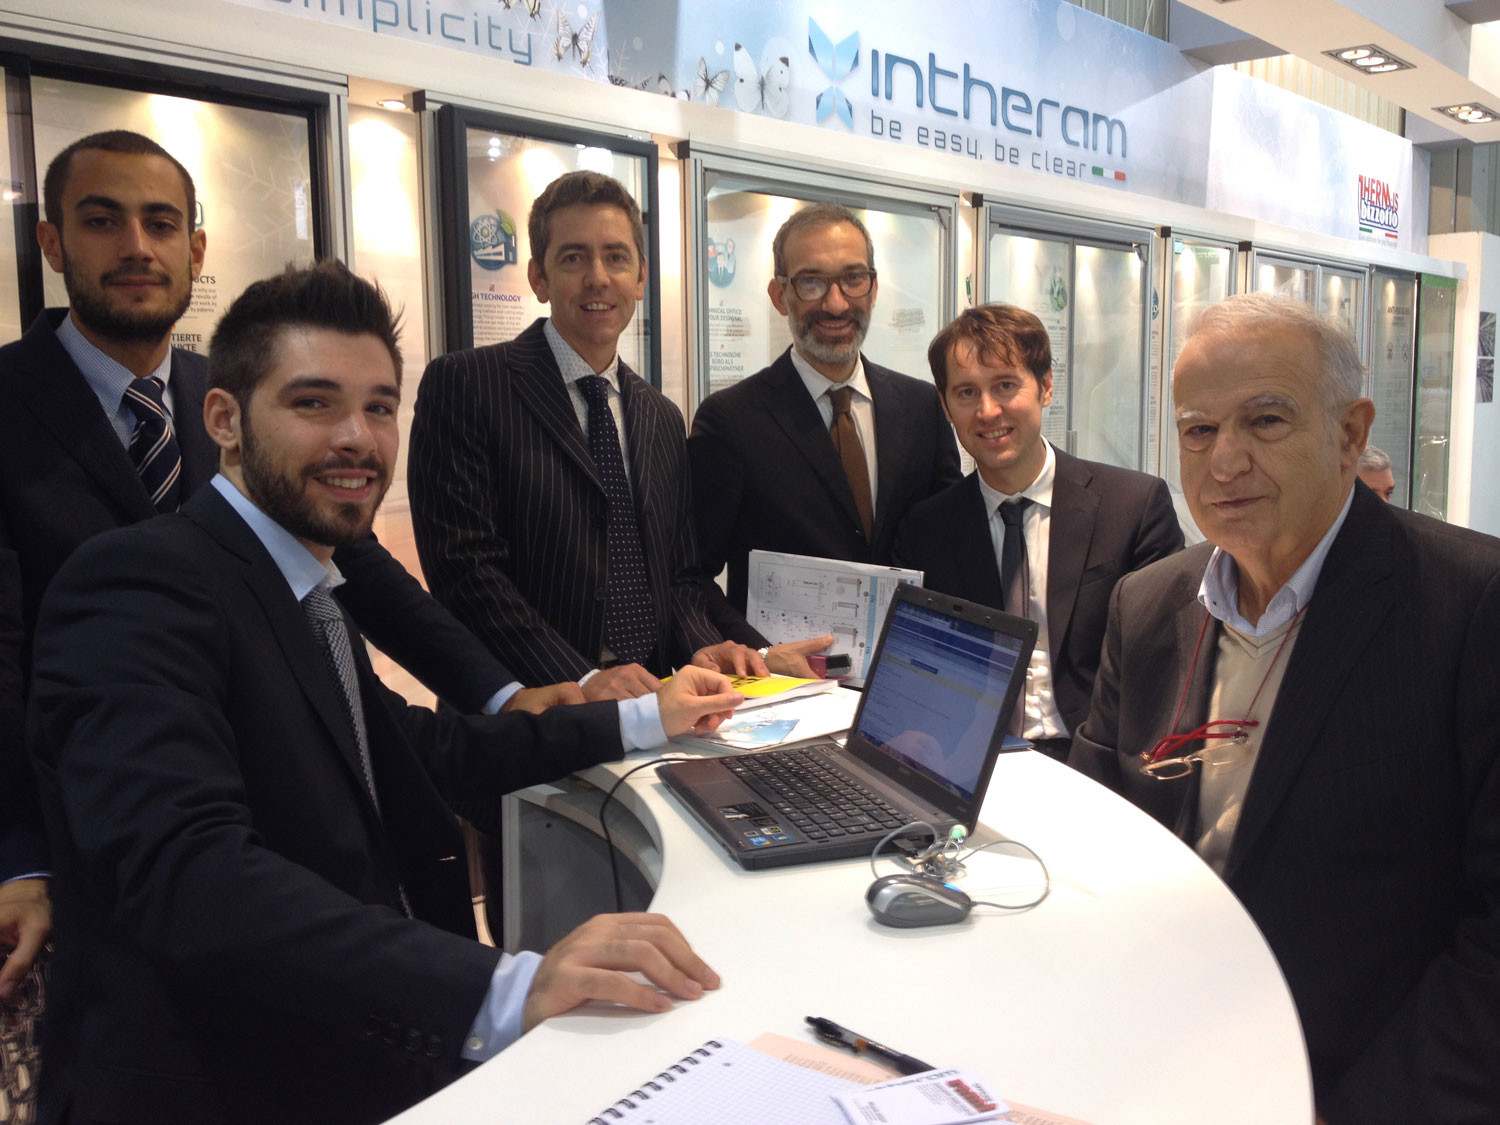 Chillventa 2014 - Officine Rami